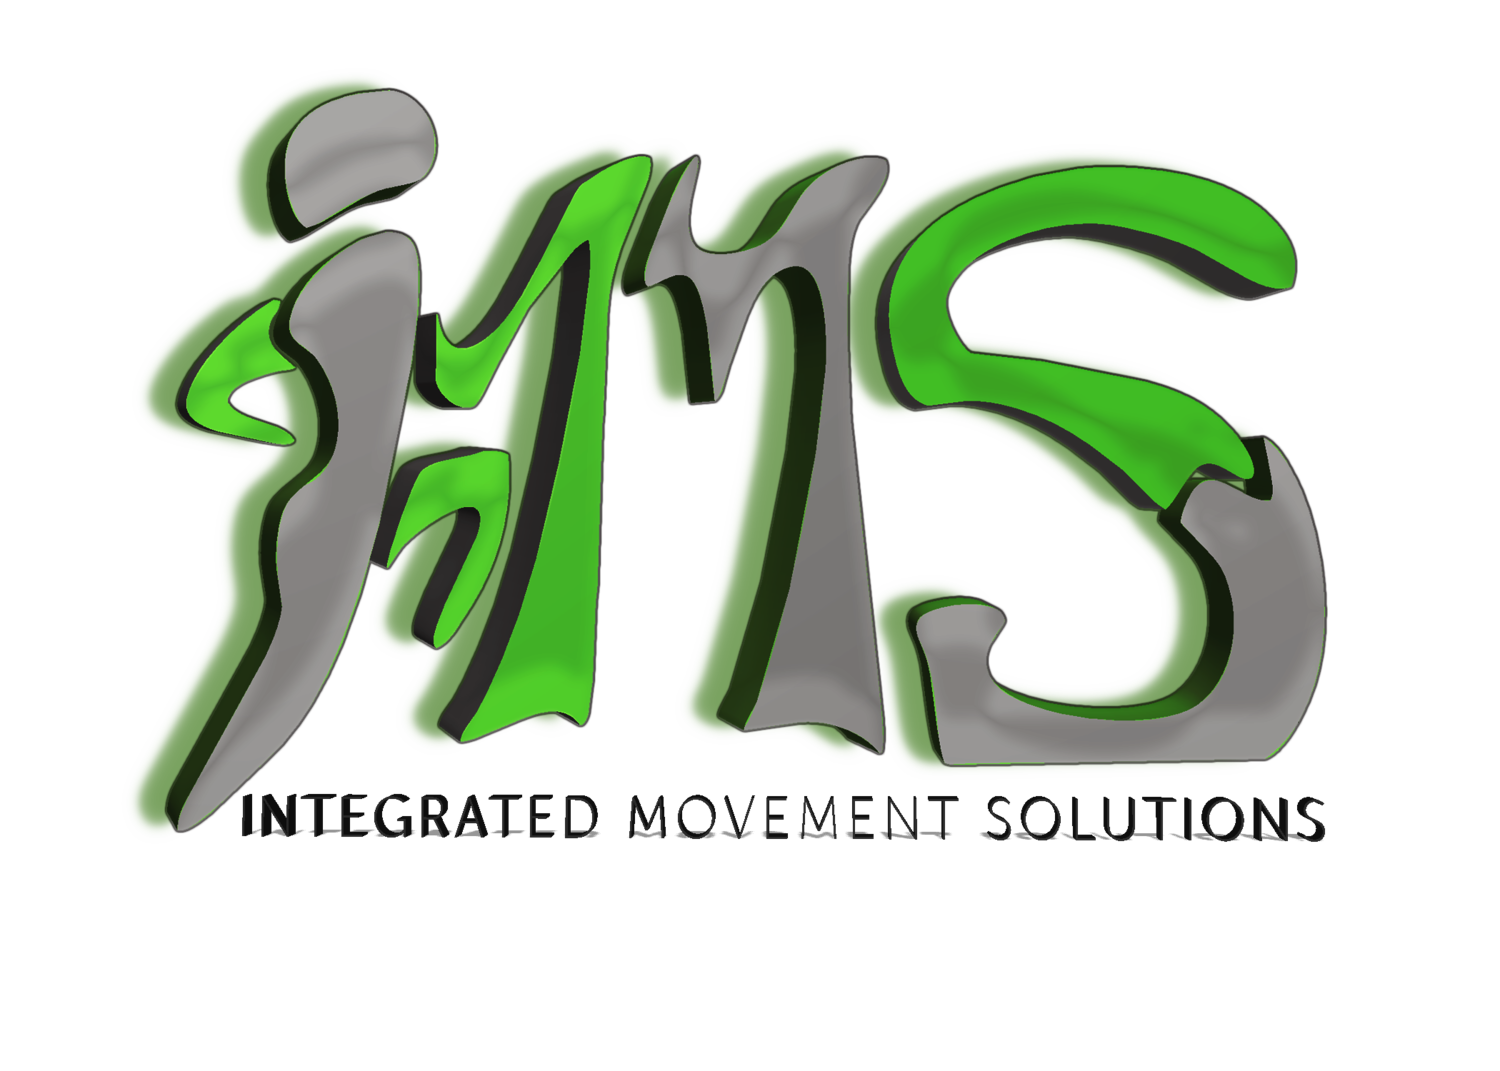 Integrated Movement Solutions